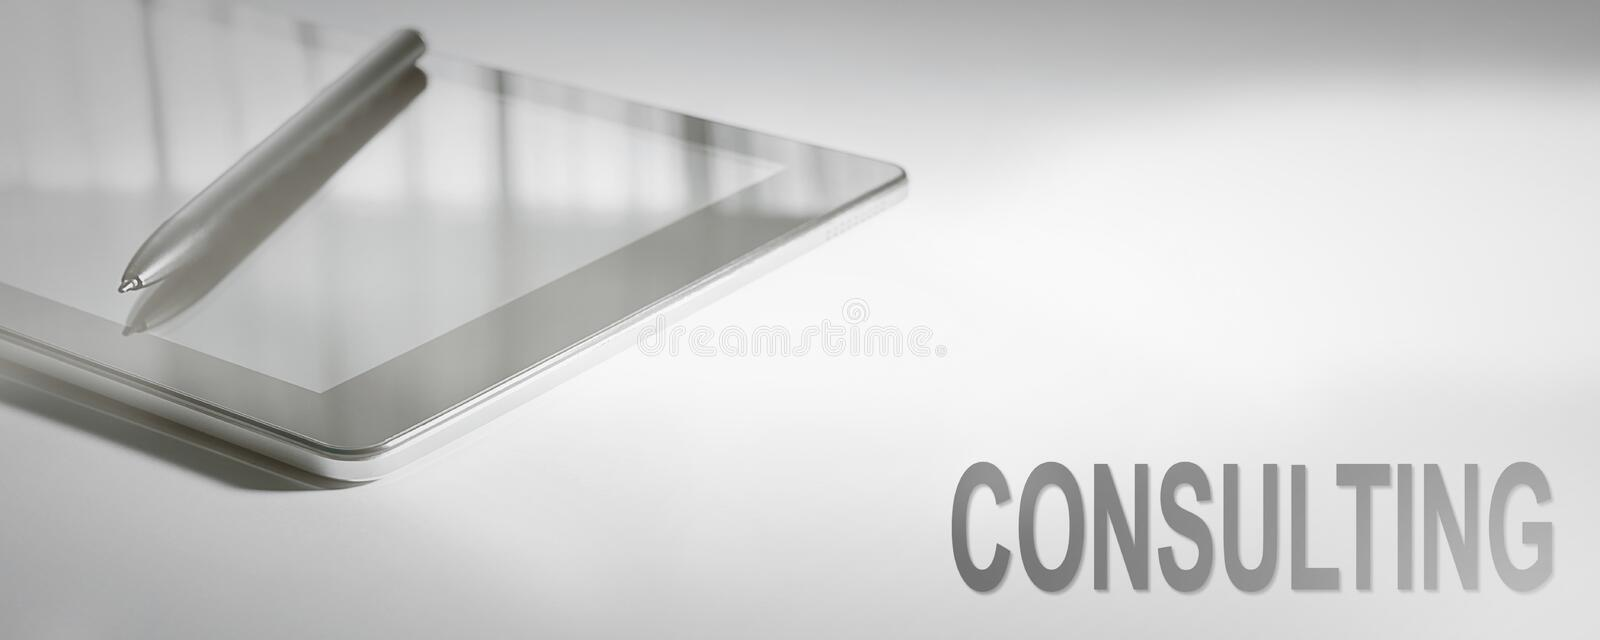 CONSULTING Business Concept Digital Technology. Graphic Concept stock image